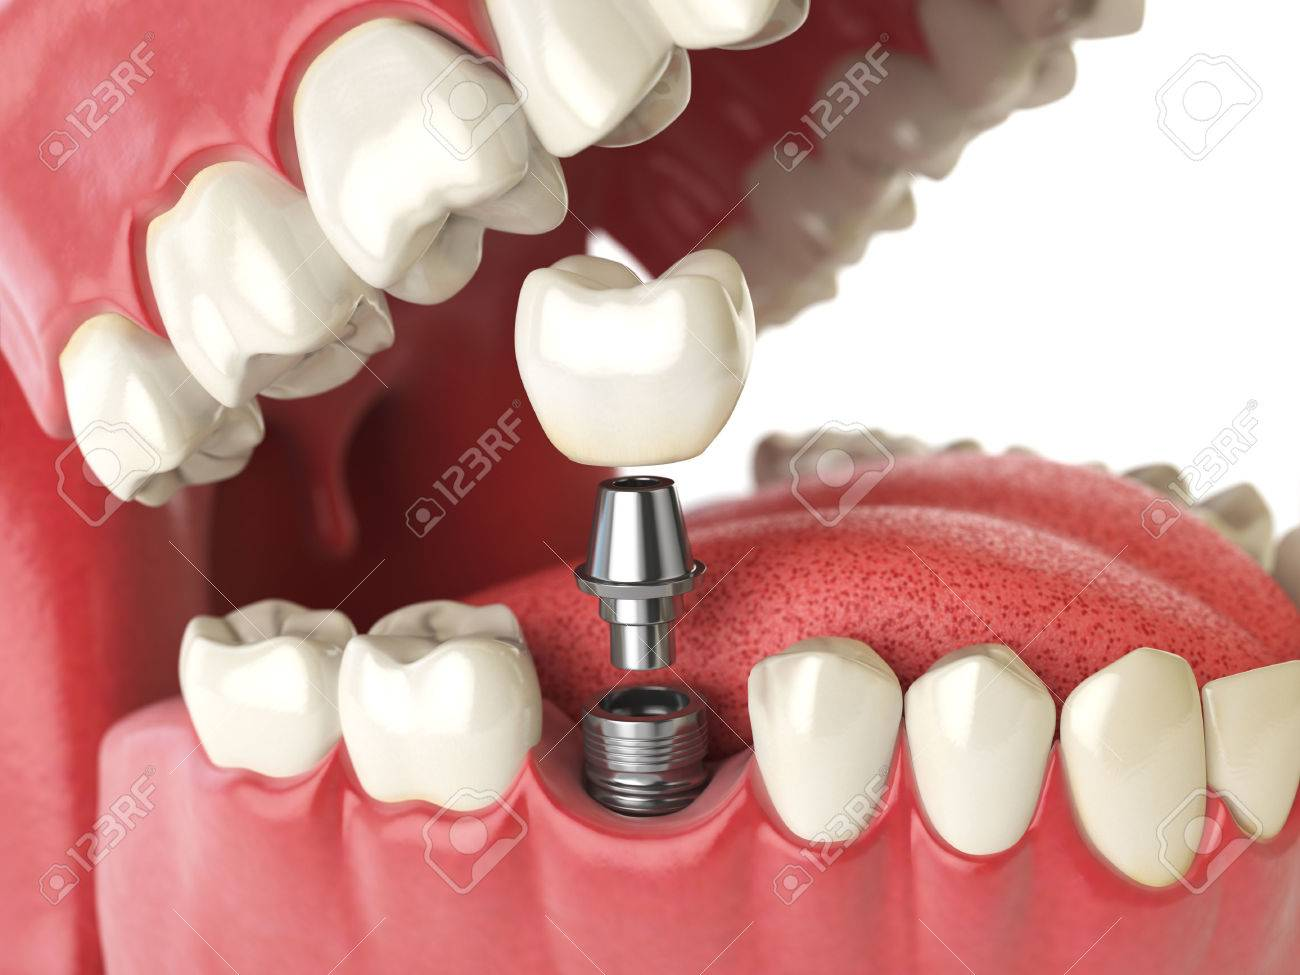 Tooth Human Implant Dental Concept Human Teeth Or Dentures